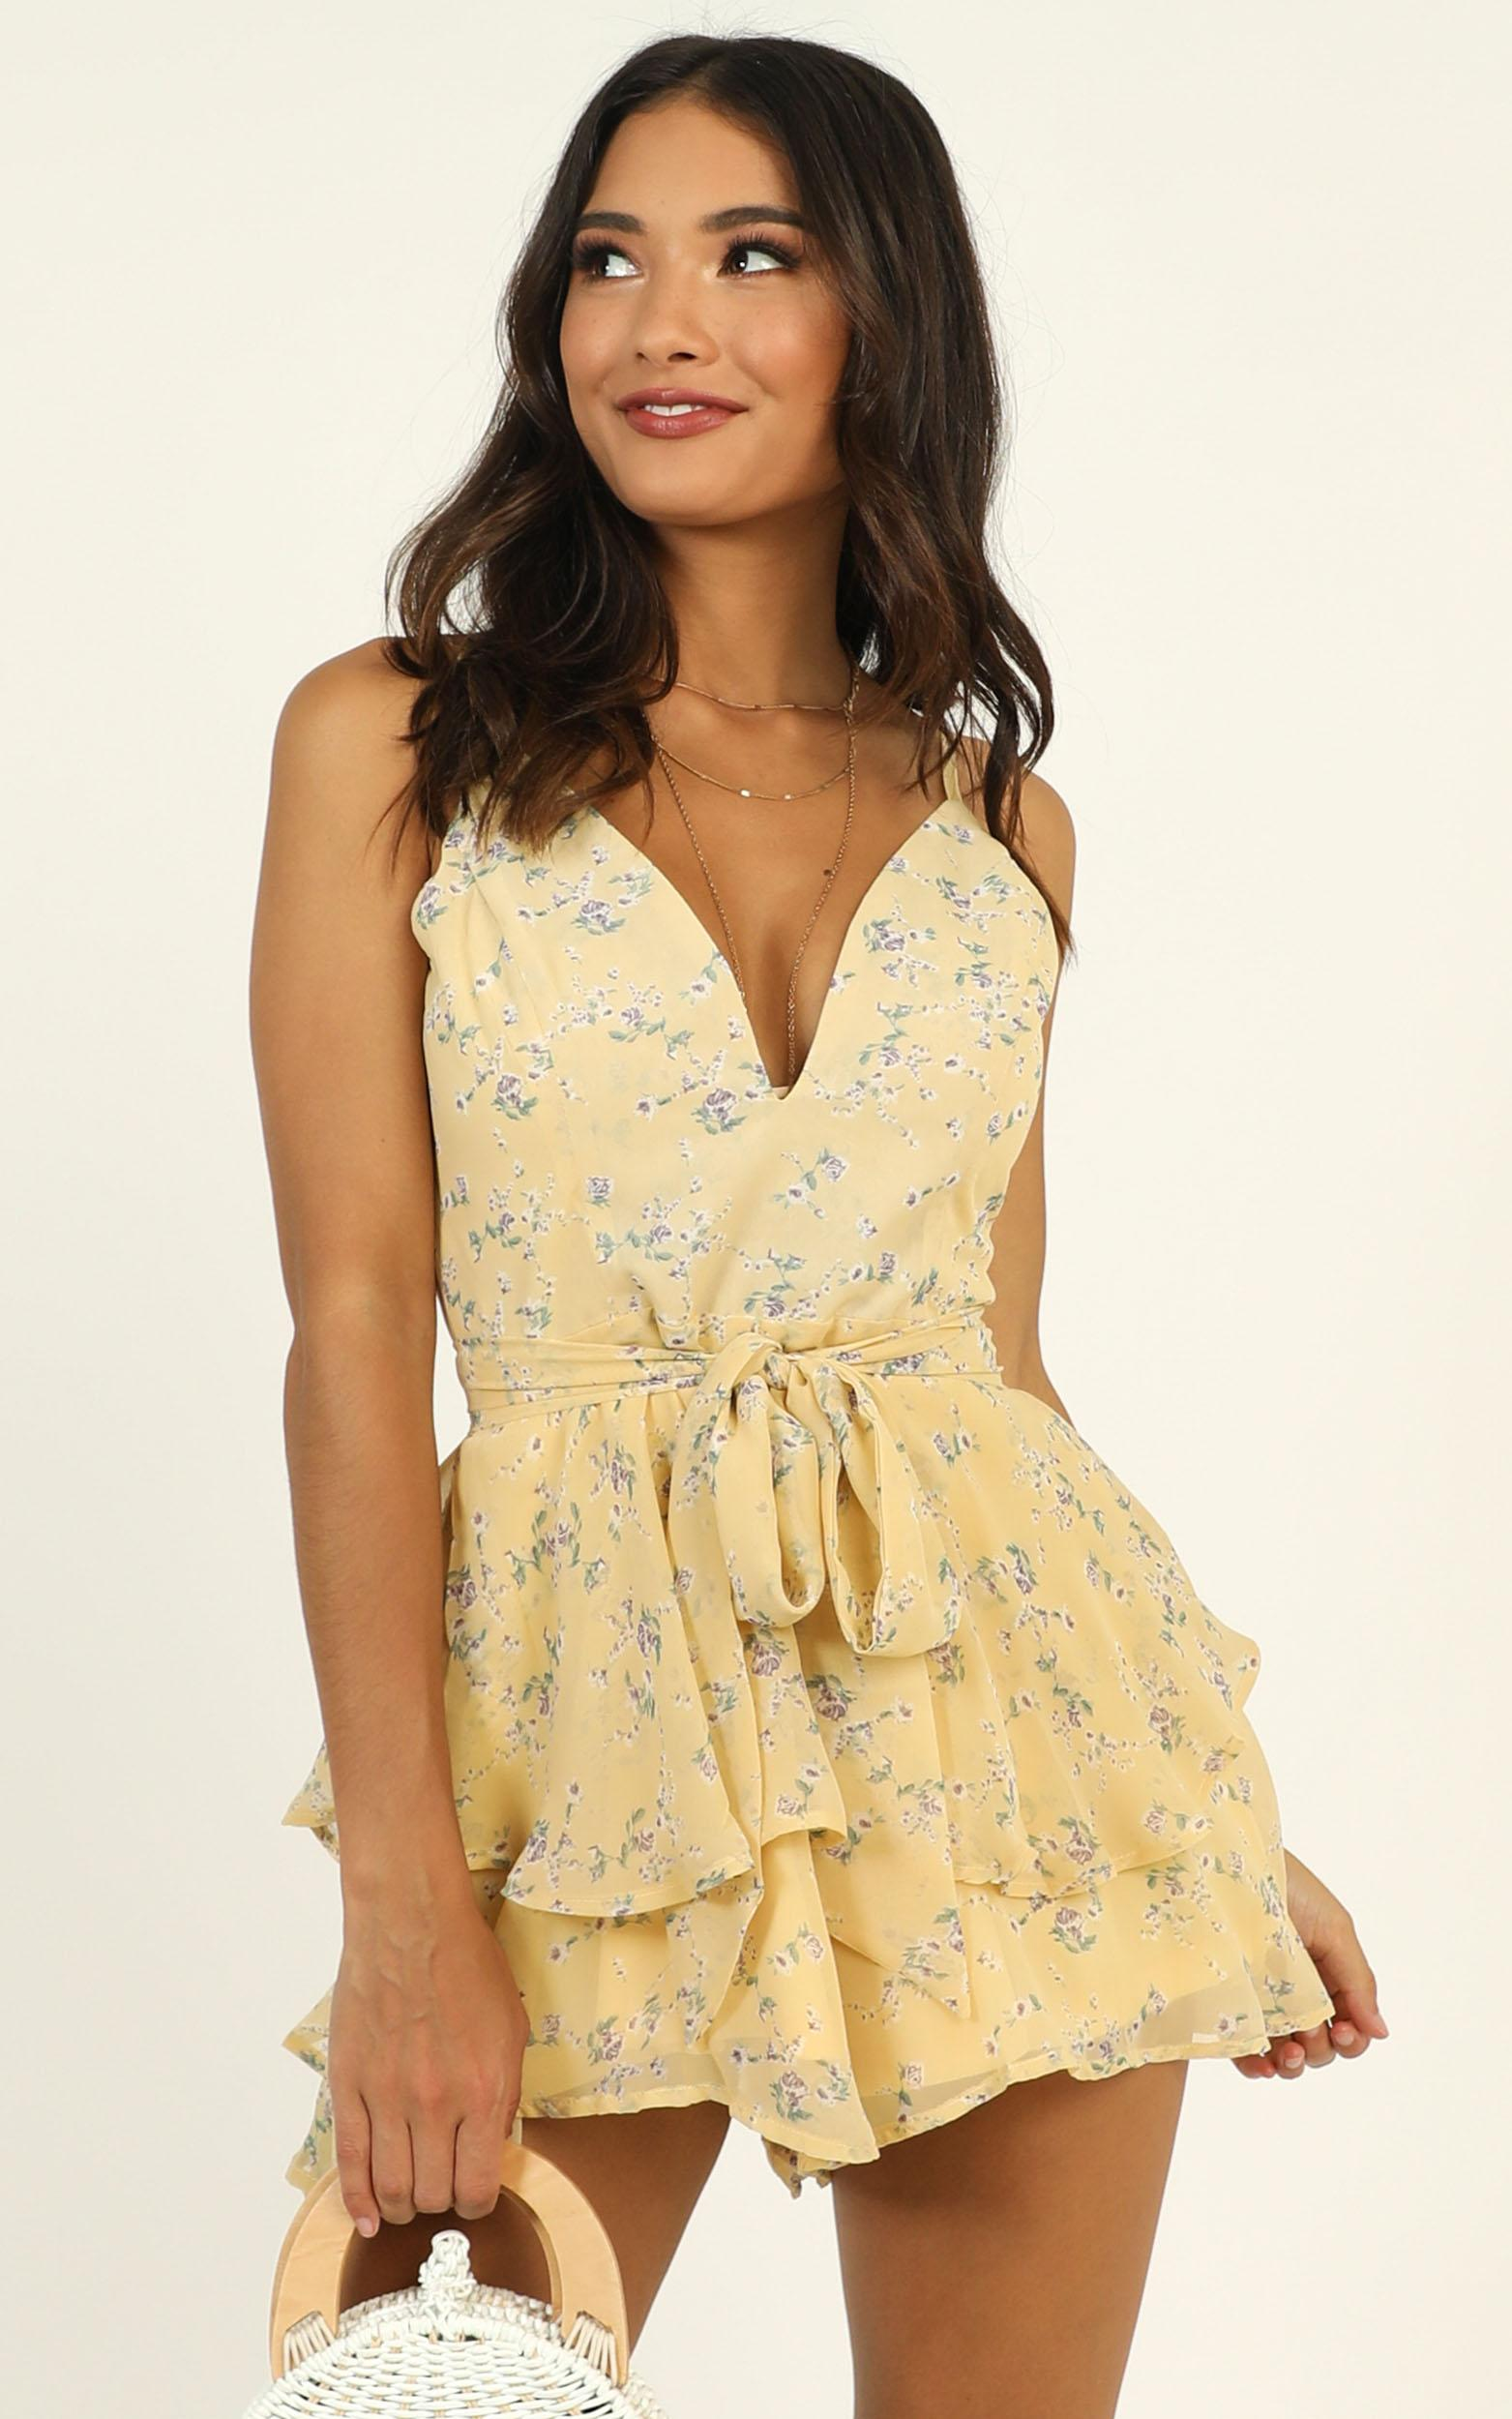 Summer Breeze Playsuit in yellow floral - 12 (L), YEL1, hi-res image number null